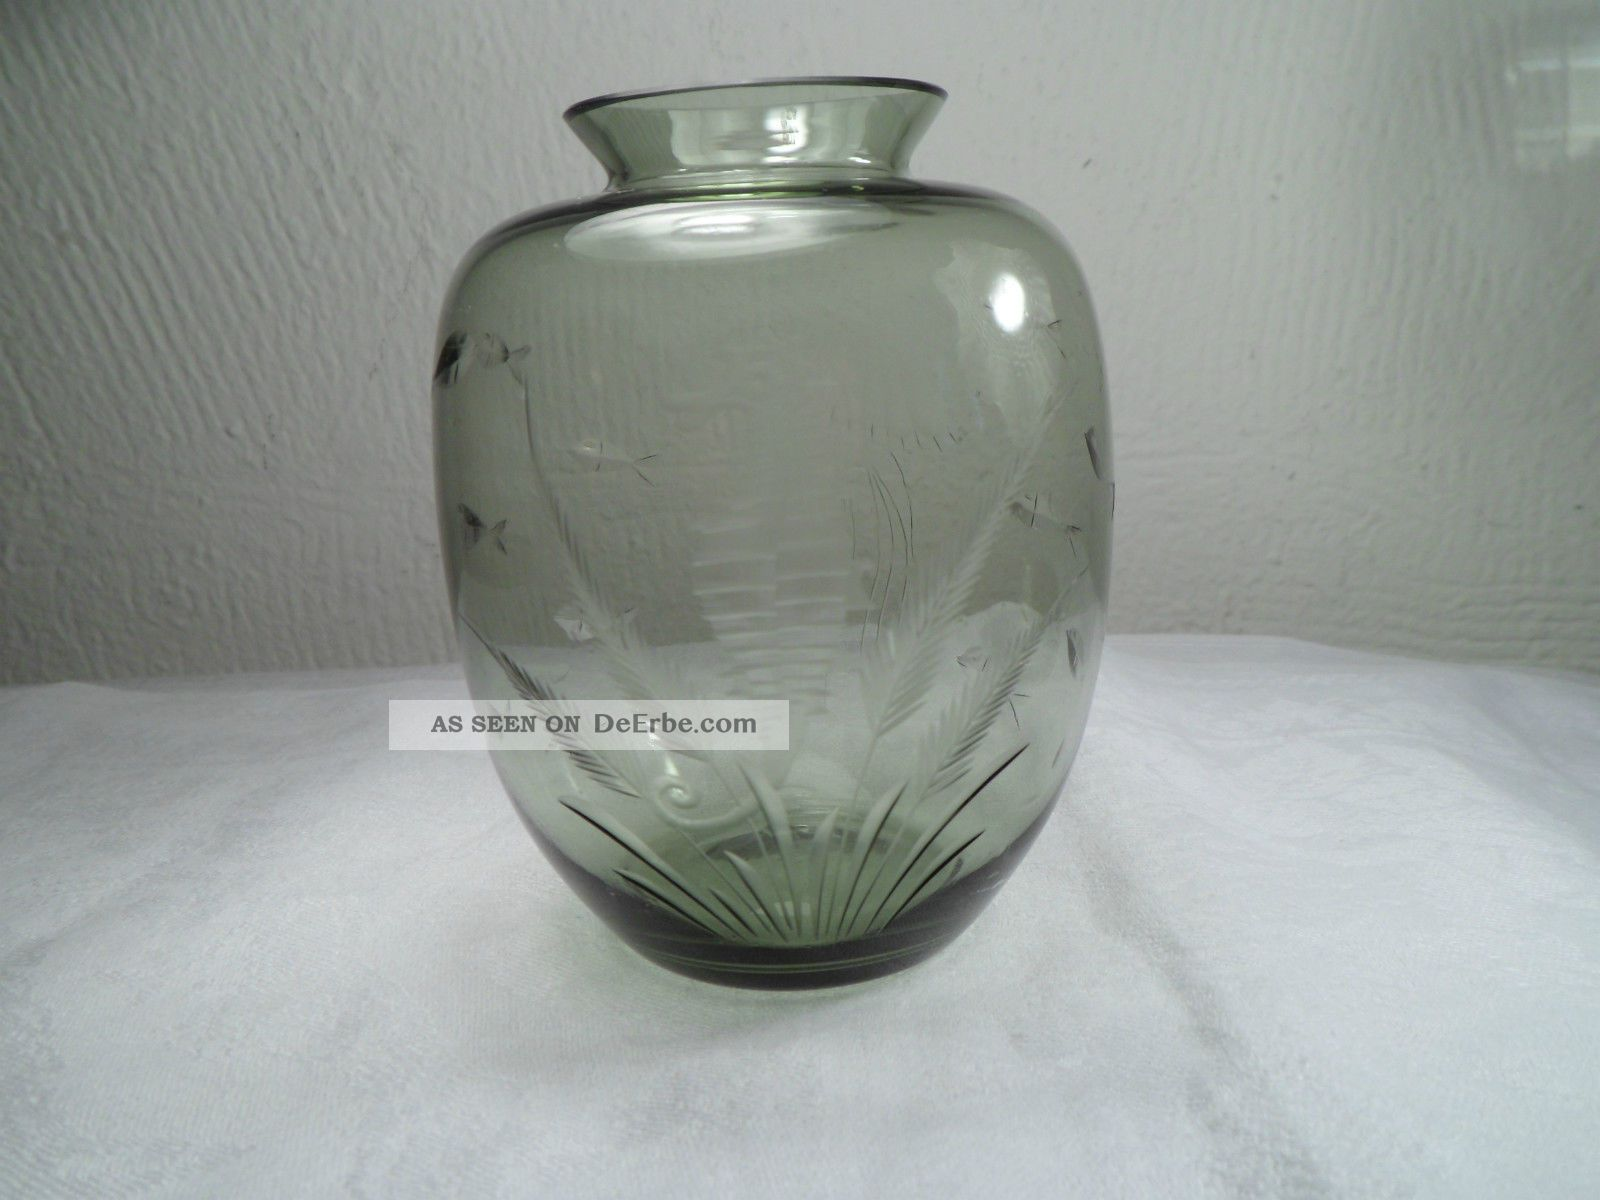 60er jahre carl rotter glas grau gr n bauchige vase fische qualle seepferd 10 cm. Black Bedroom Furniture Sets. Home Design Ideas